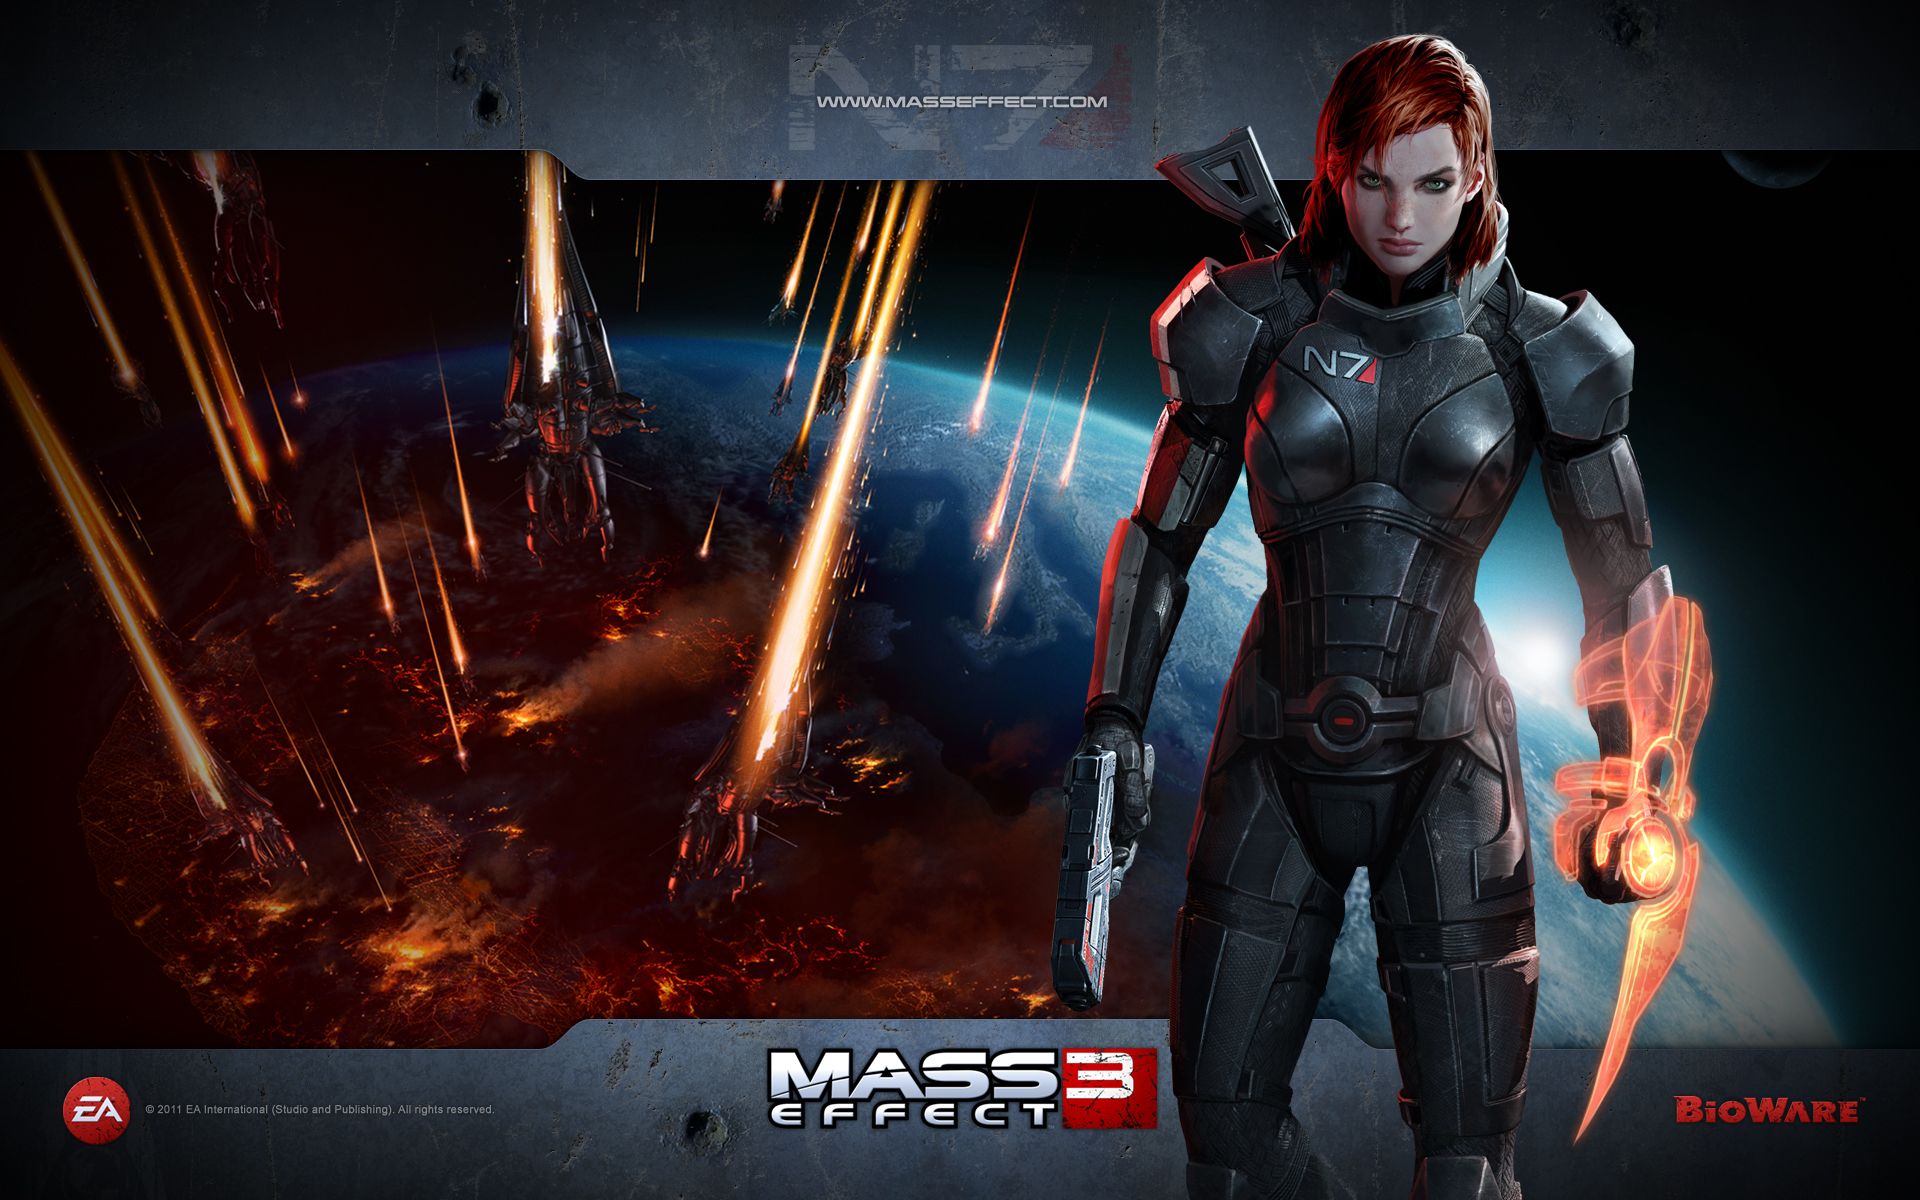 Mass Effect 3 Hd Wallpaper Background Image 1920x1200 Id